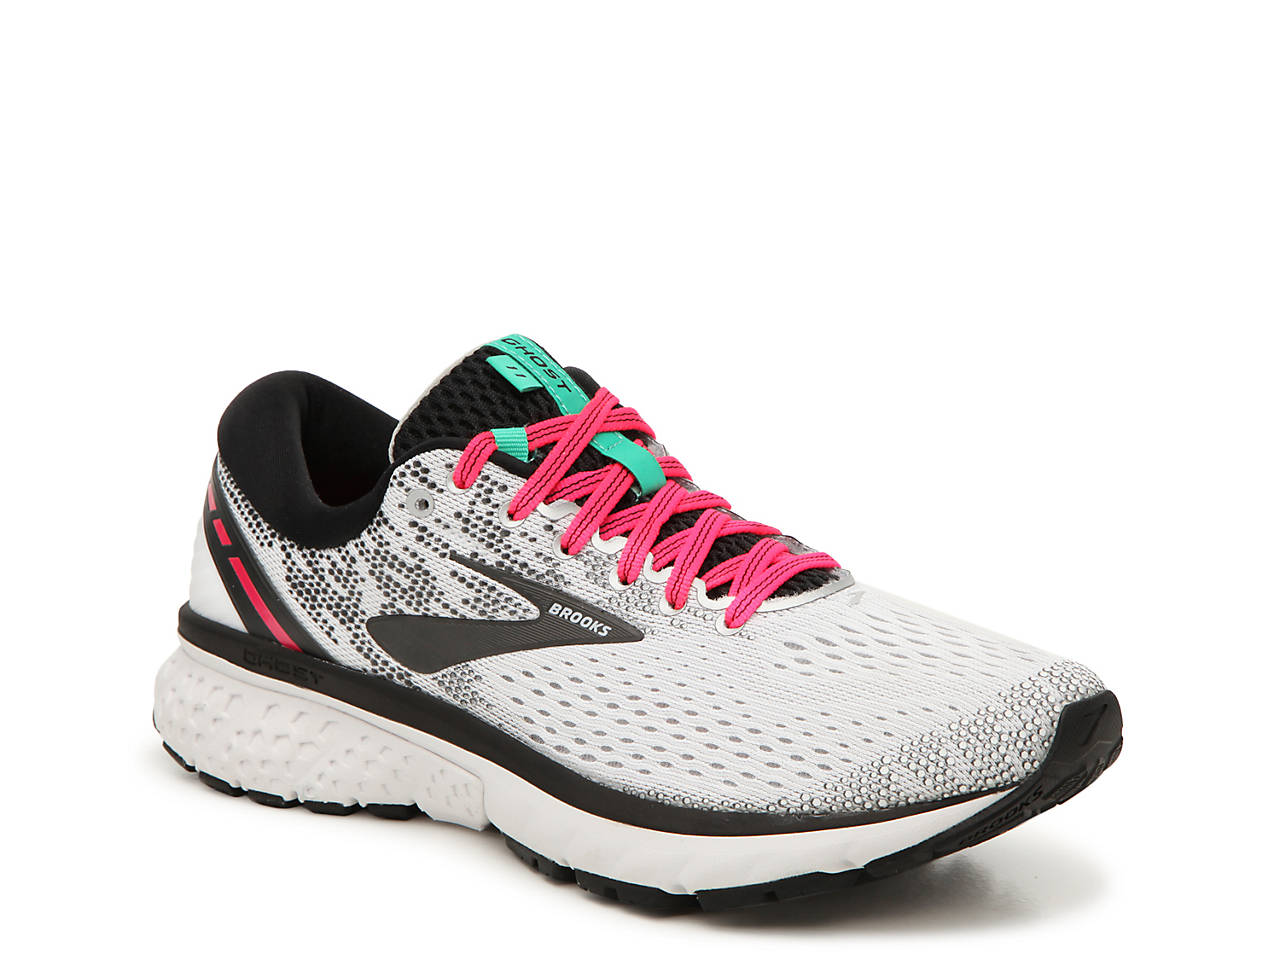 e278313f3129 Brooks Ghost 11 Running Shoe - Women s Women s Shoes